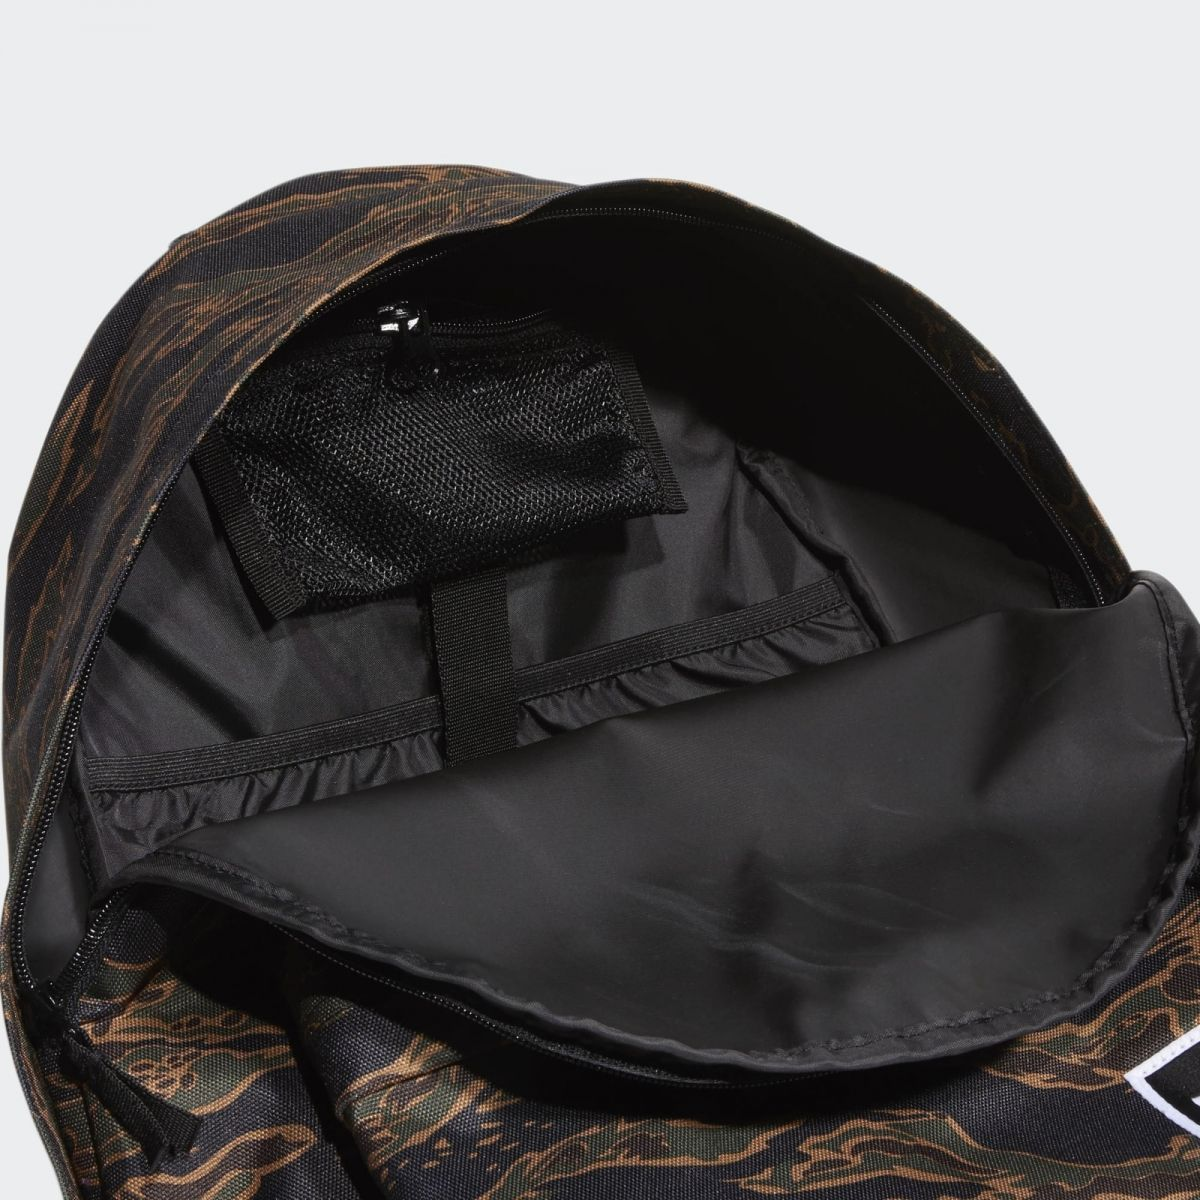 Type Backpacks adidas Originals Tiger Camouflage Backpack c4ff5d1f72977